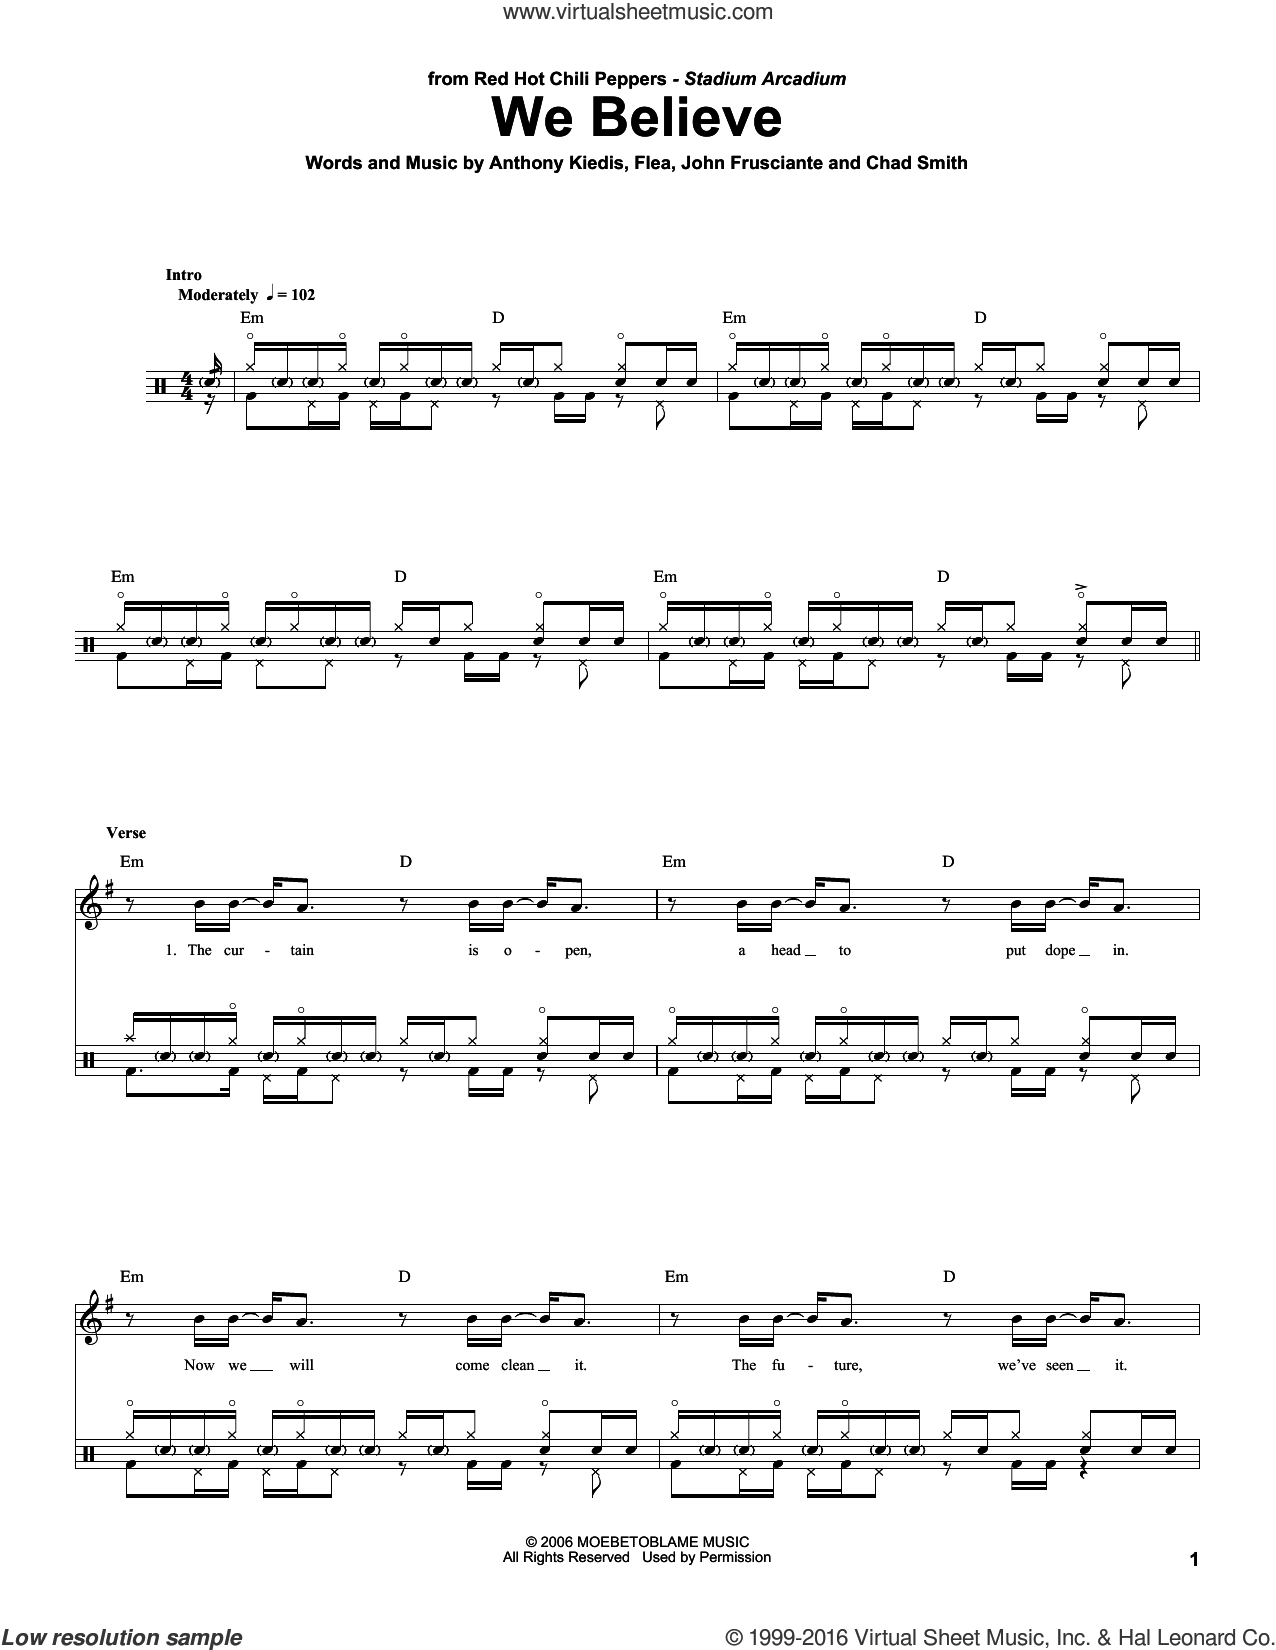 We Believe sheet music for drums by Red Hot Chili Peppers. Score Image Preview.